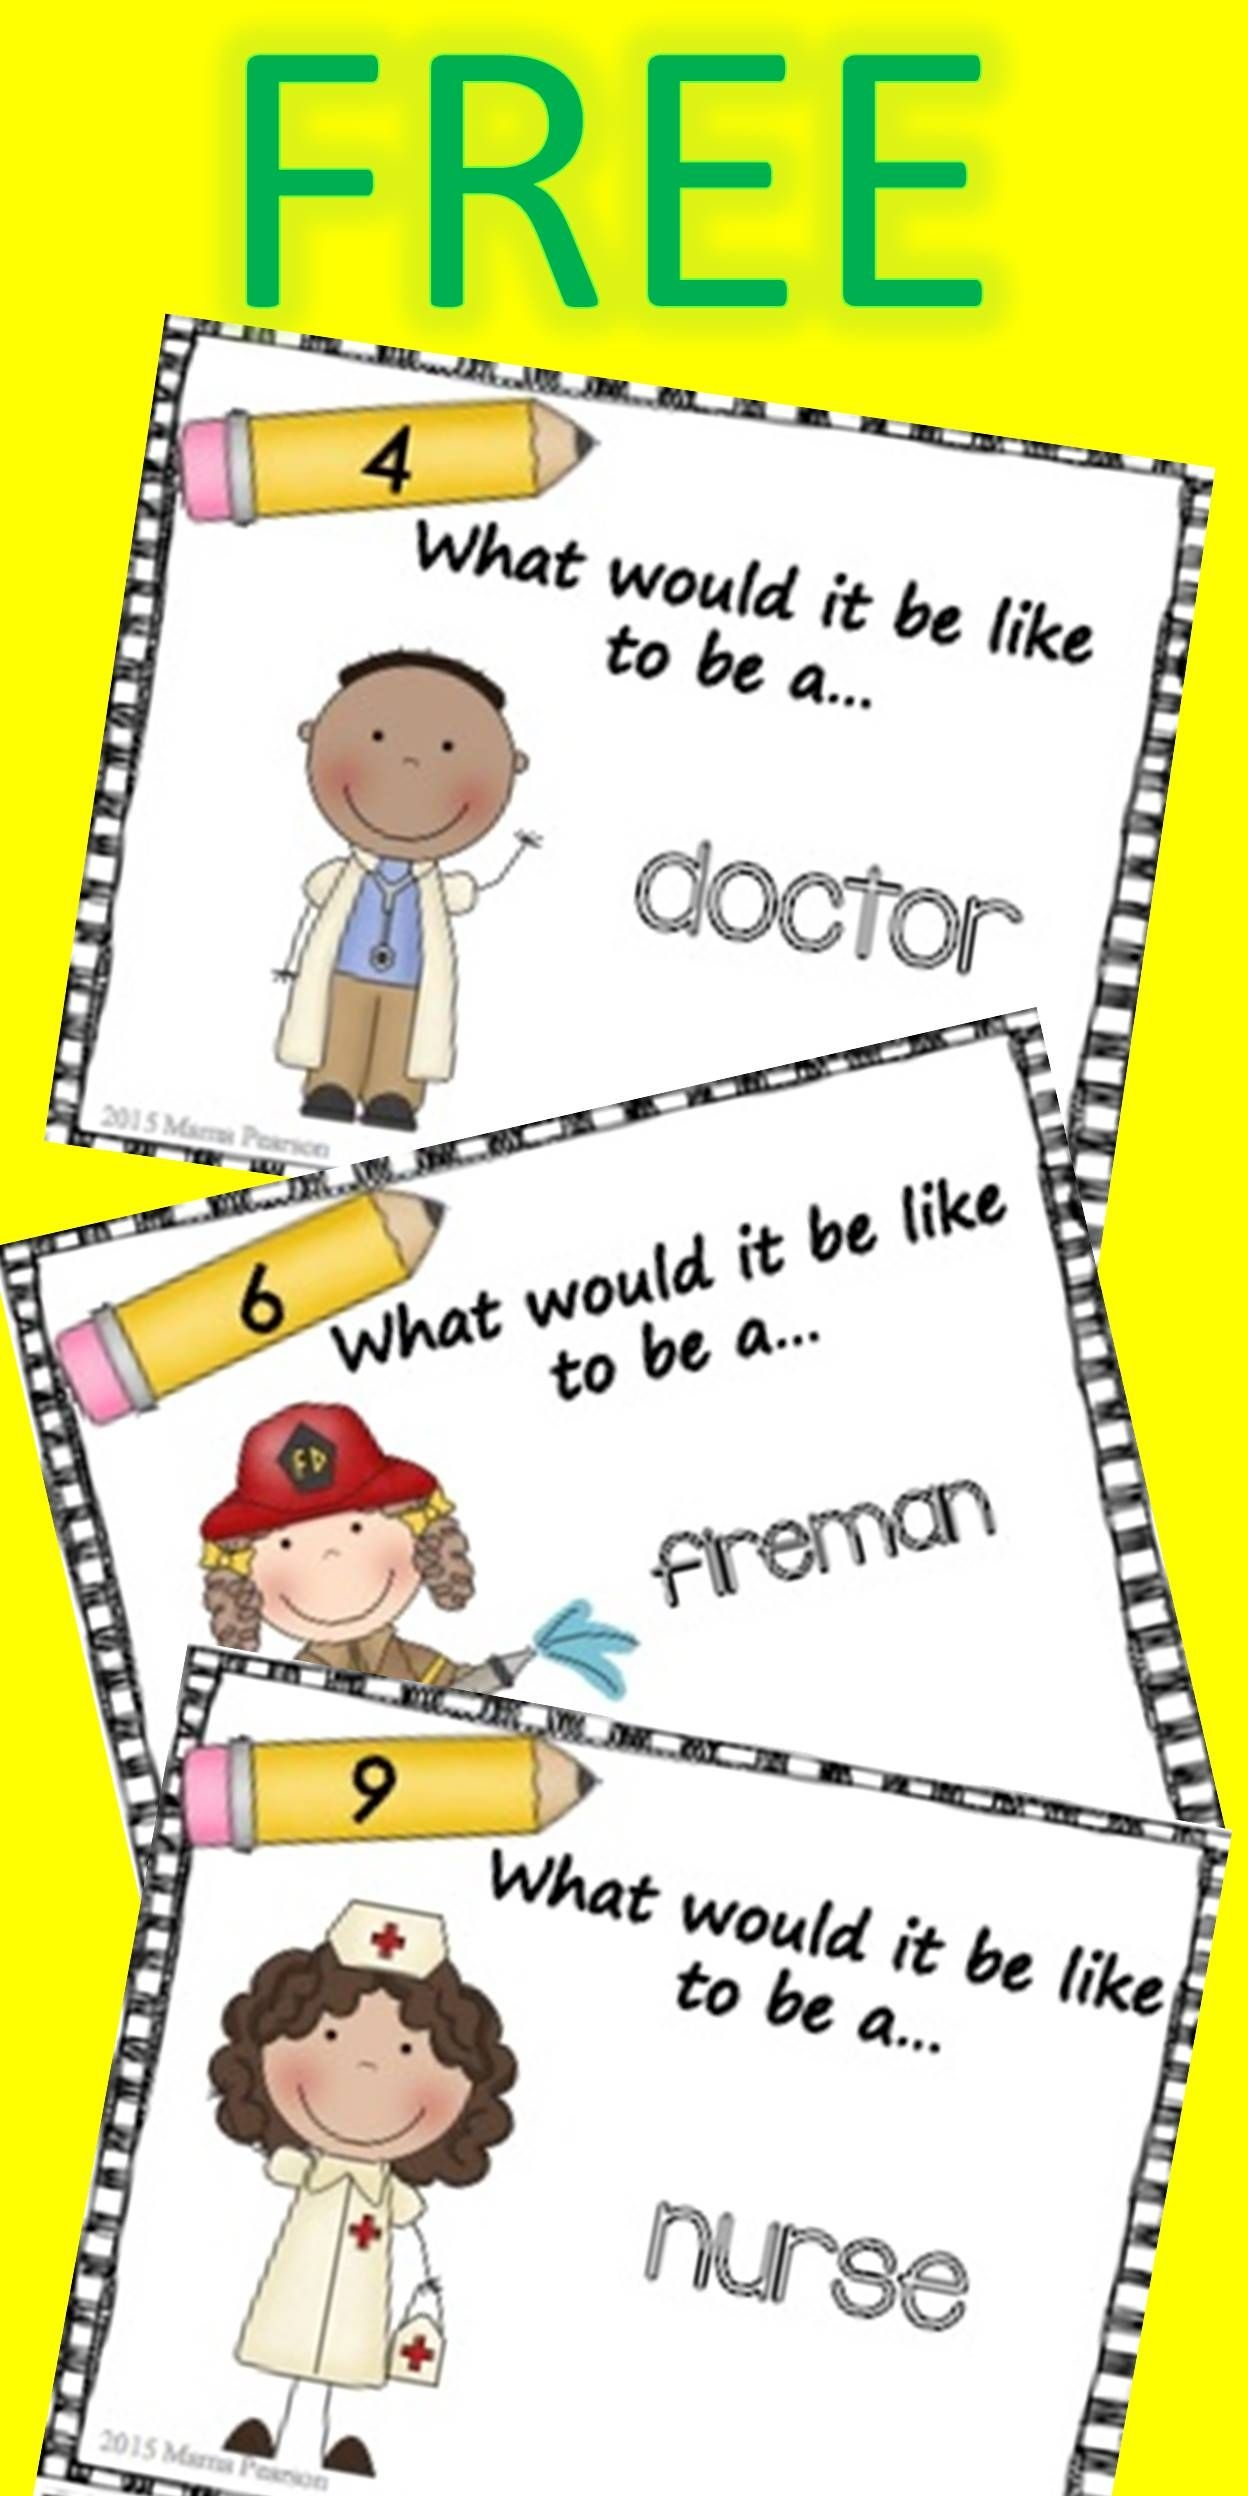 12 Free Task Cards To Give Your Students The Opportunity To Write - Free Printable Kindergarten Task Cards